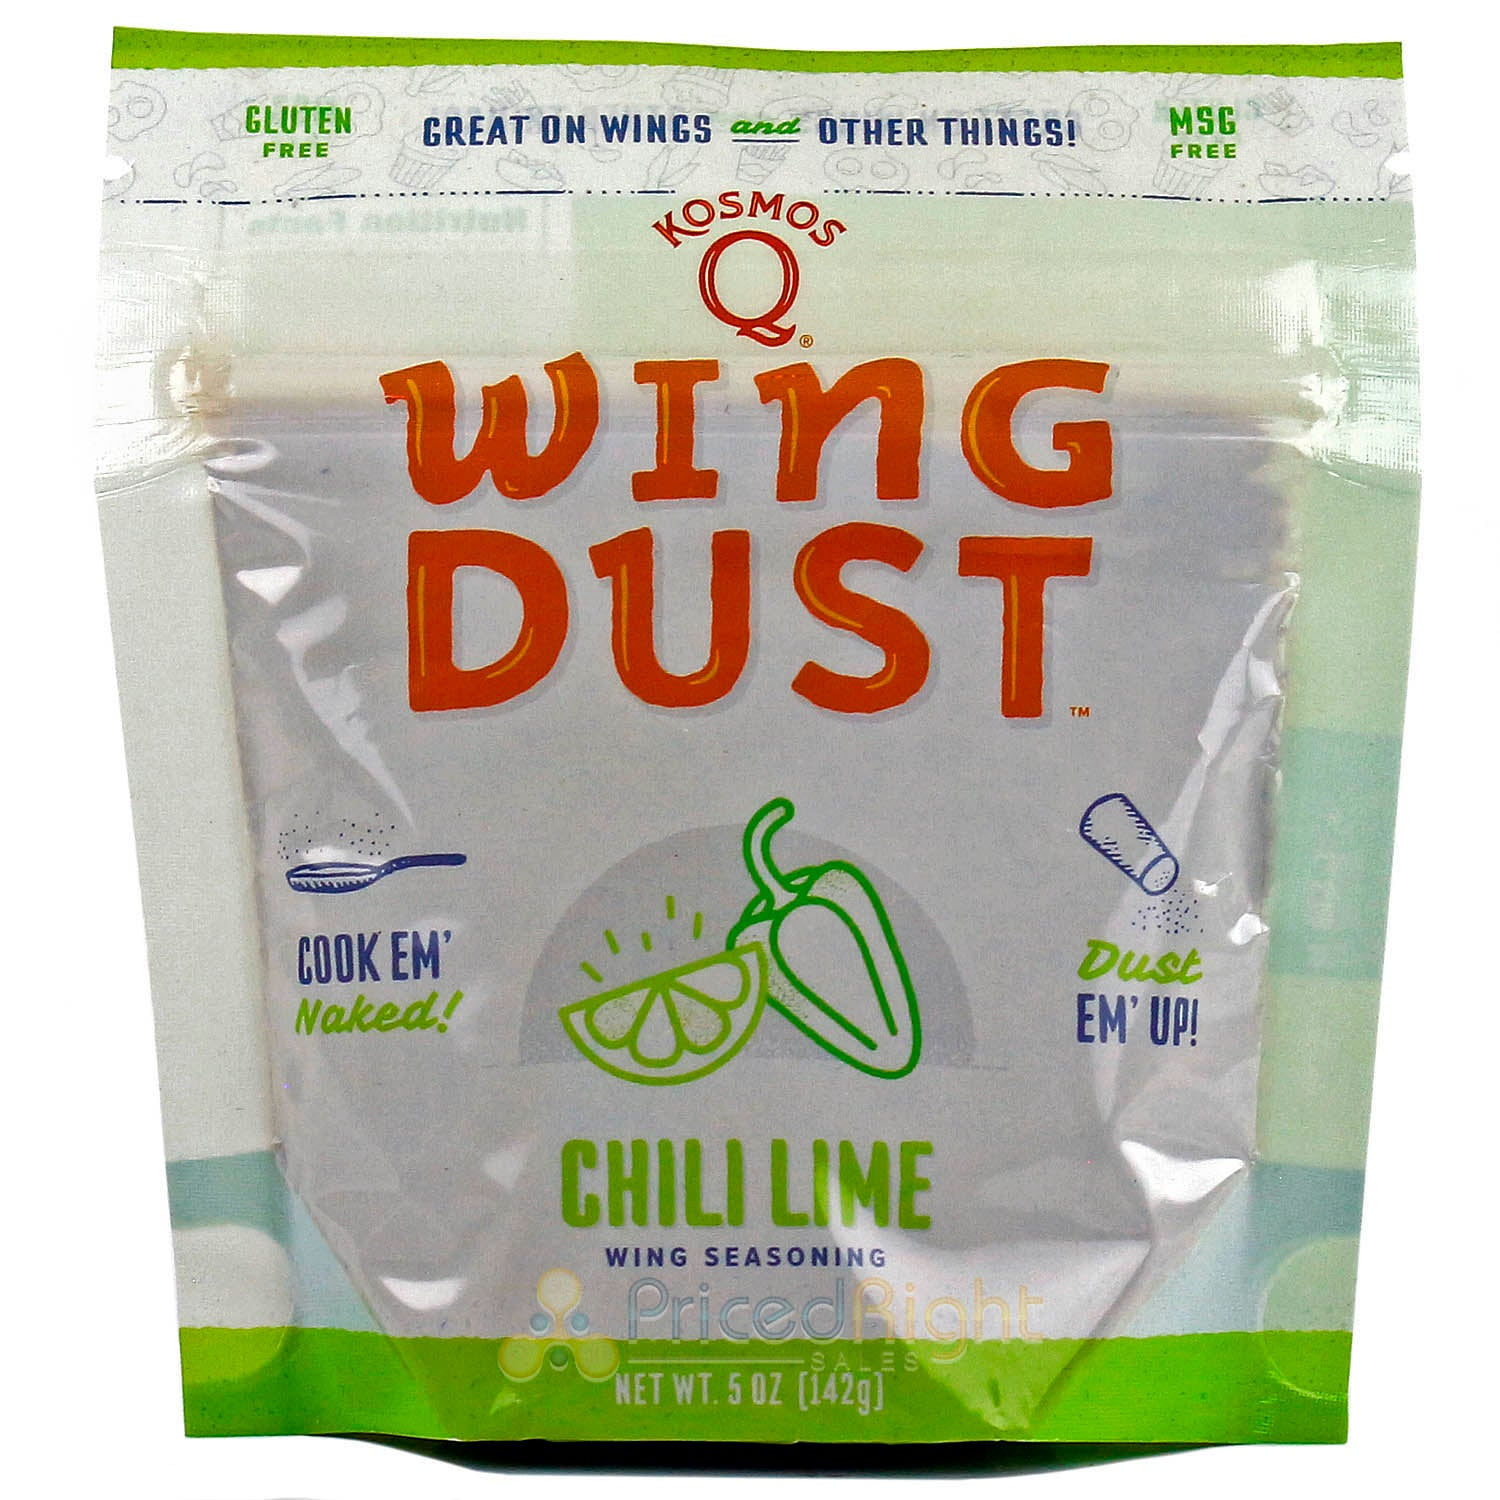 Kosmos Q Wing Dust Chili Lime Dry Rub Seasoning Competition Rated Pit Master